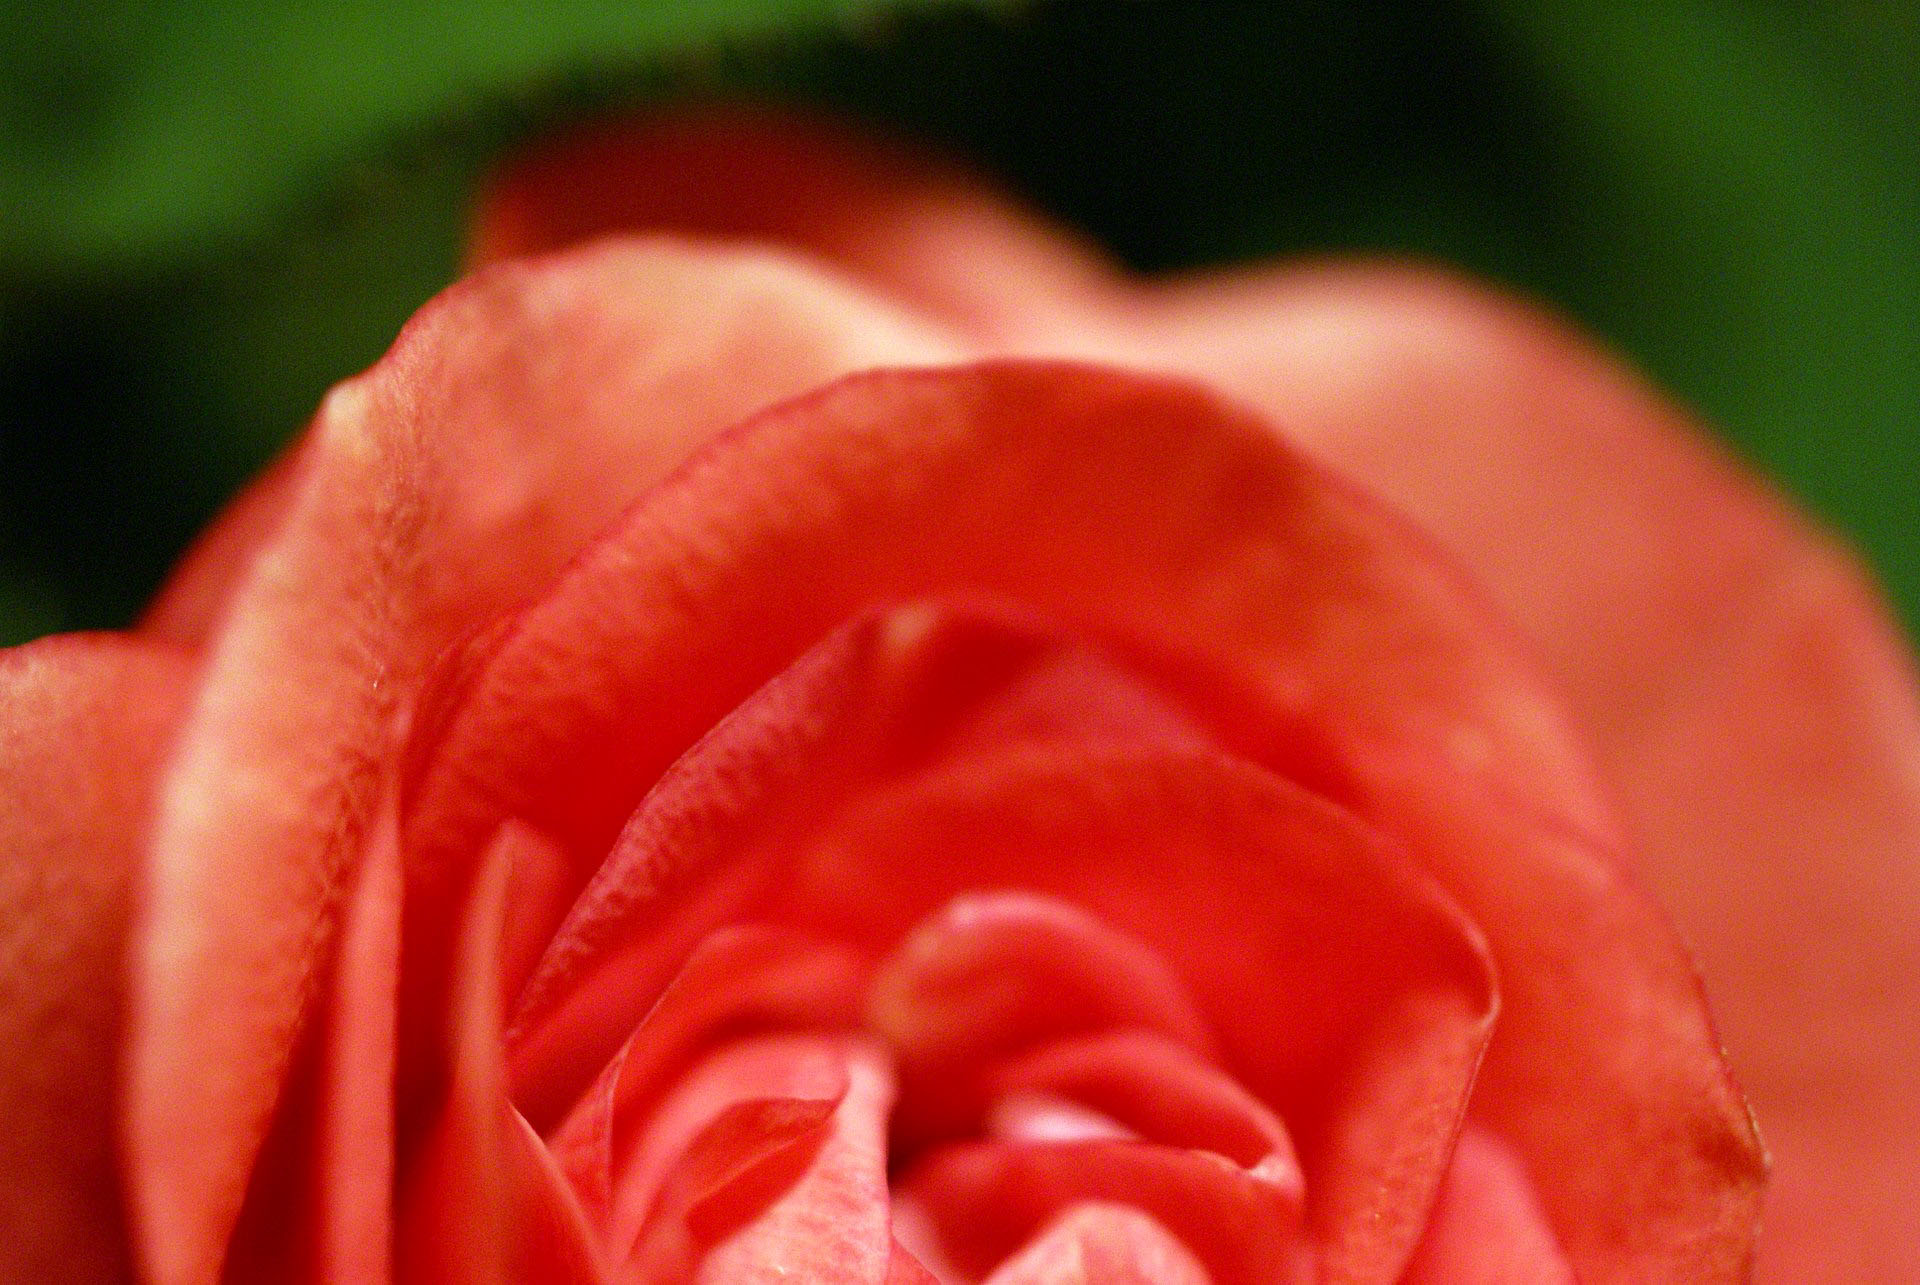 http://www.fabiovisentin.com/photography/photo/12/soft-rose.jpg